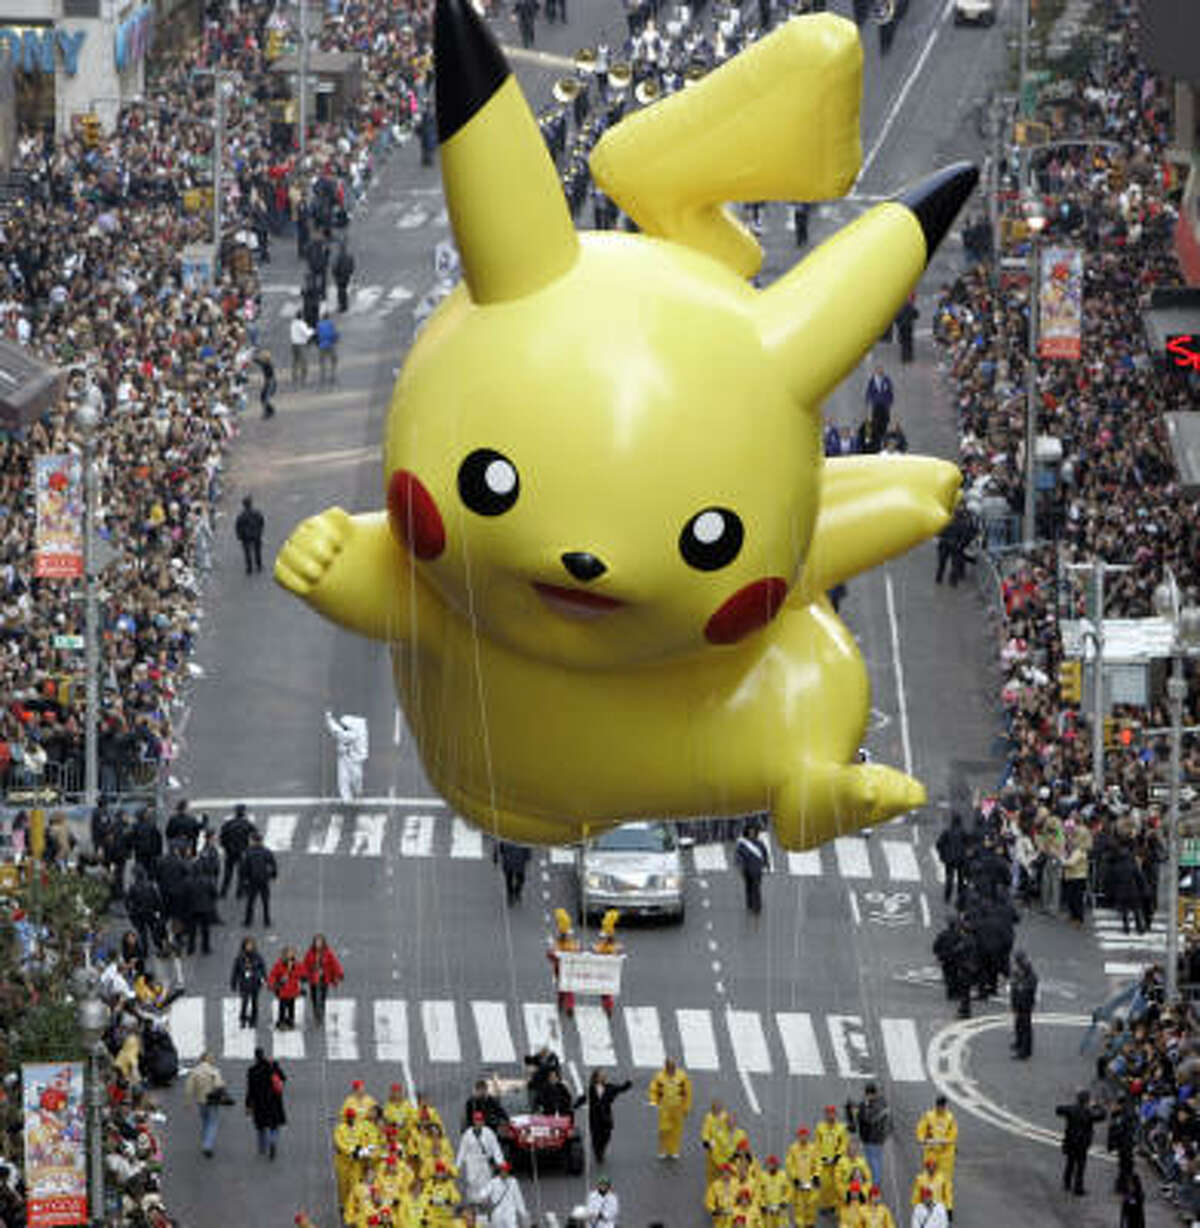 Pokemon In 1996, the first Pokemon games were released in Japan.